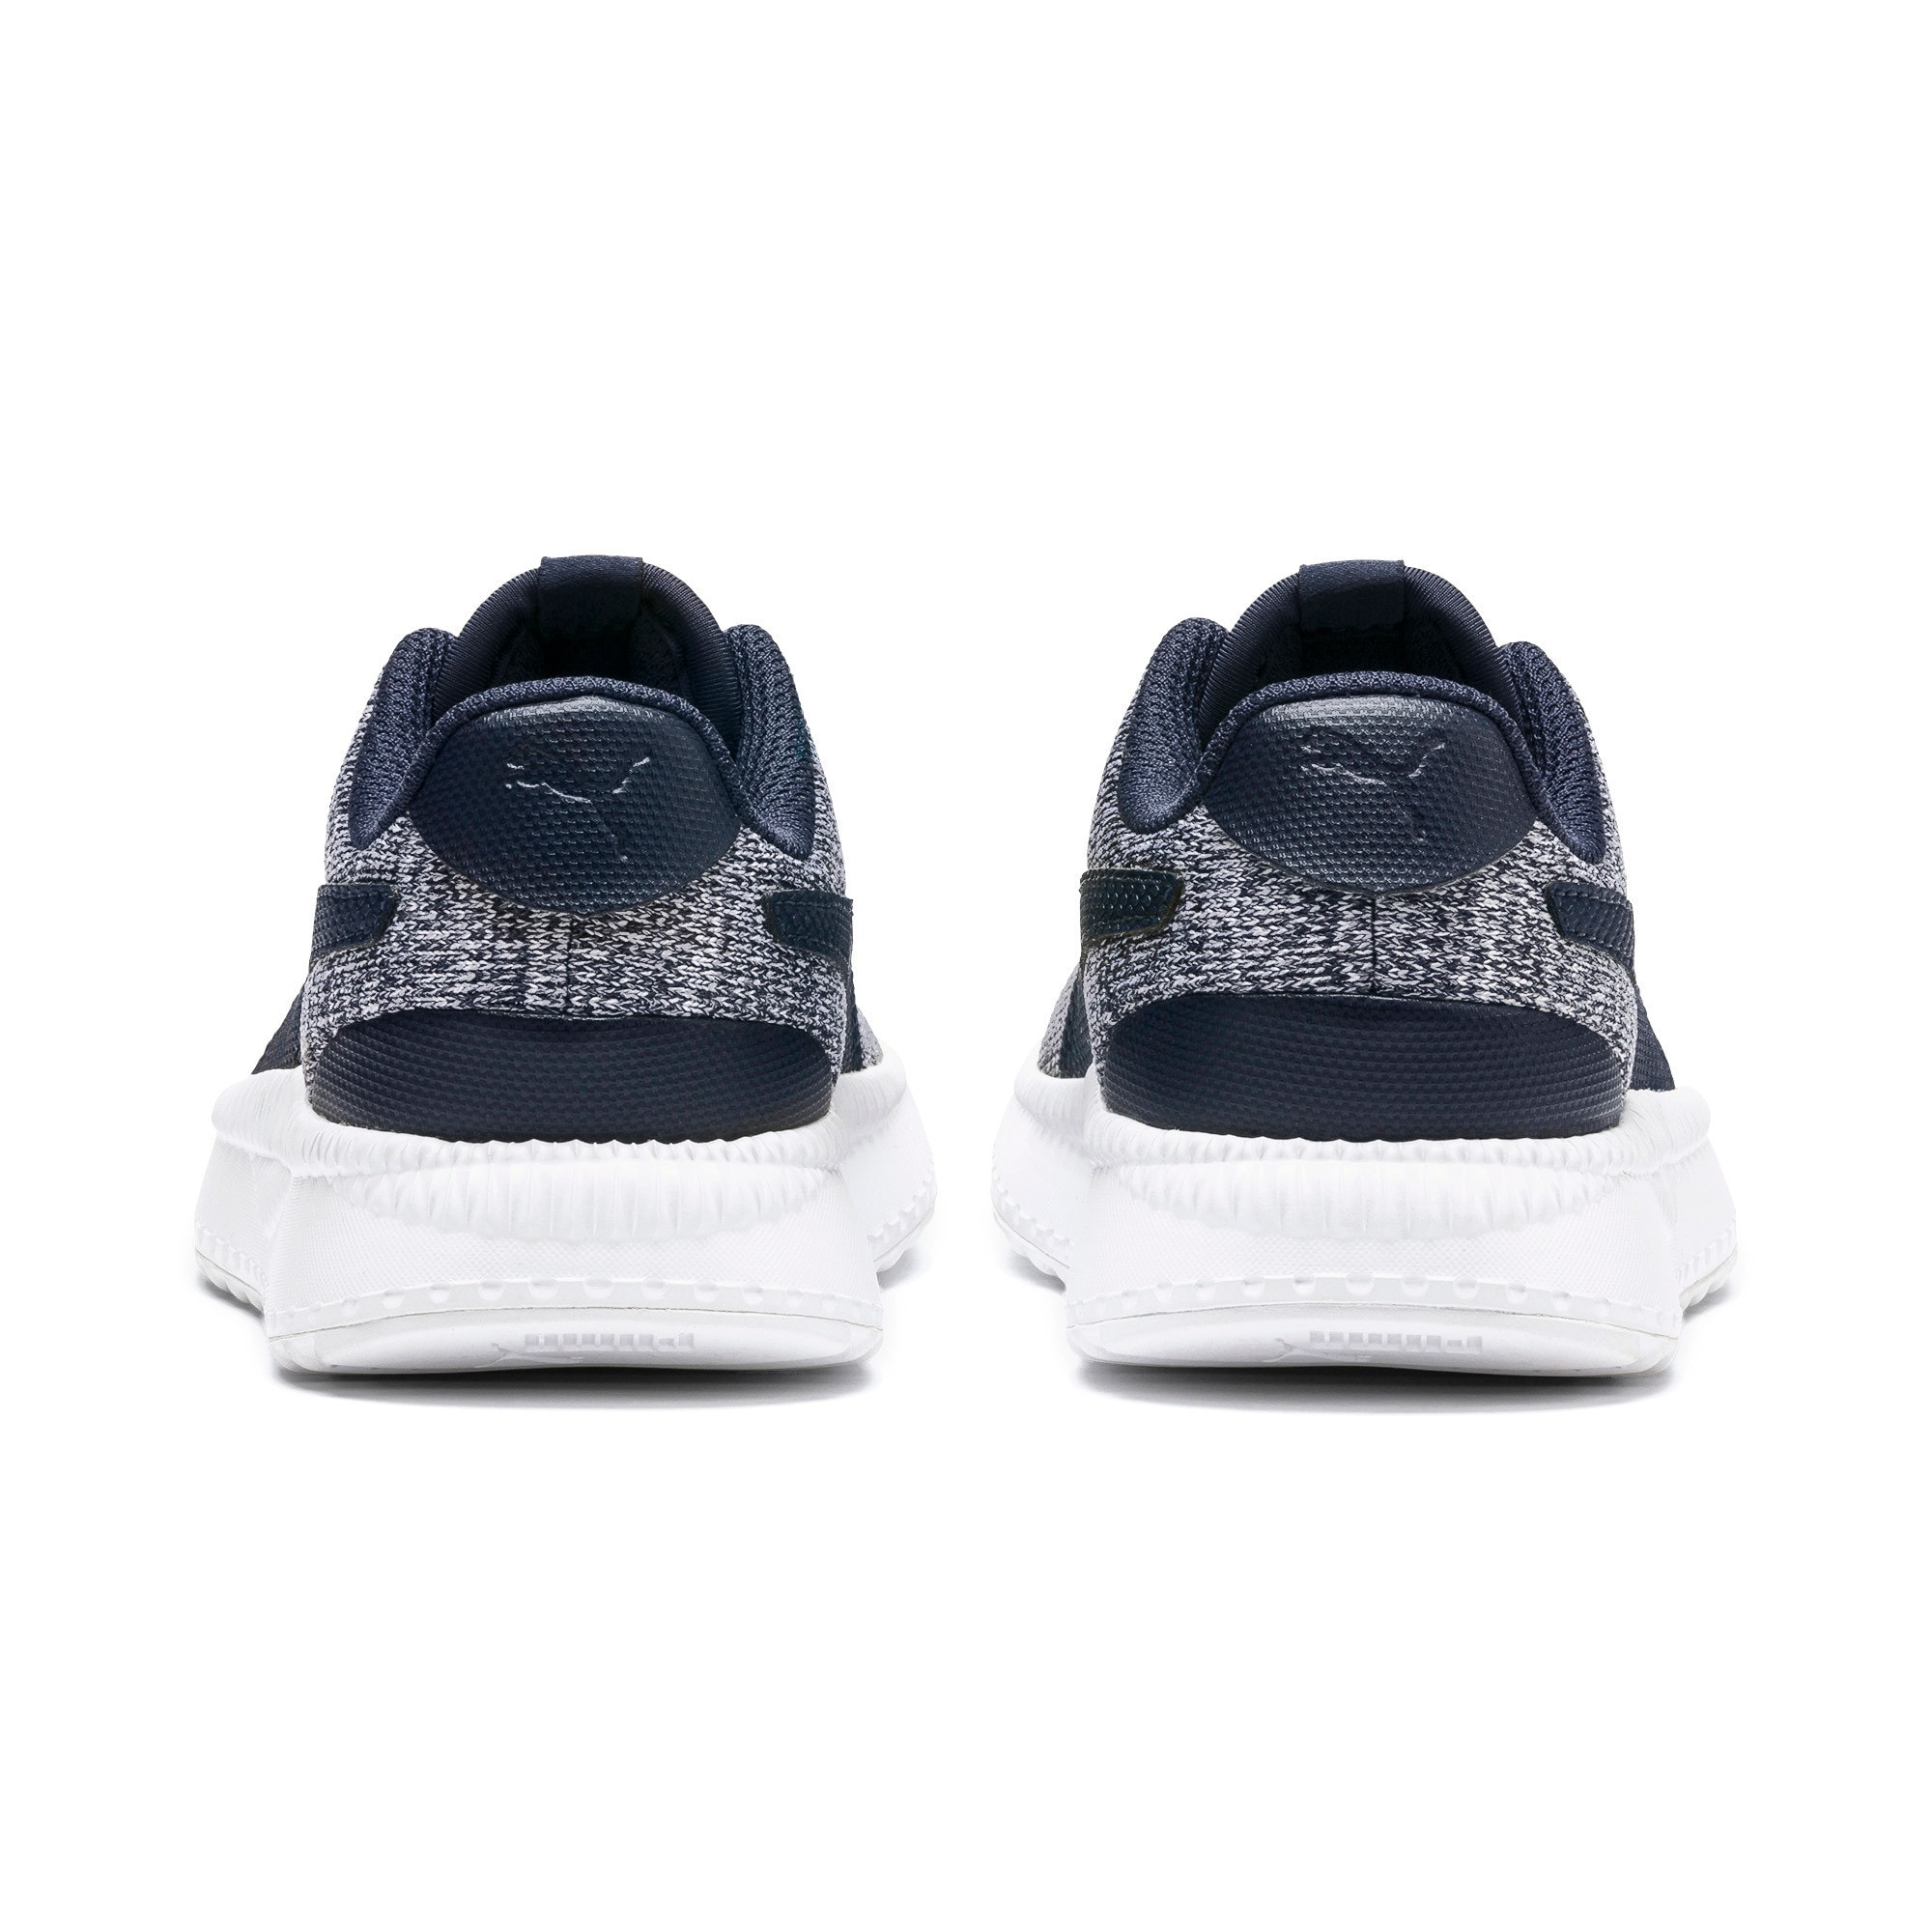 Thumbnail 3 of Pacer Next FS Knit AC Kids' Trainers, Peacoat-Puma White, medium-IND